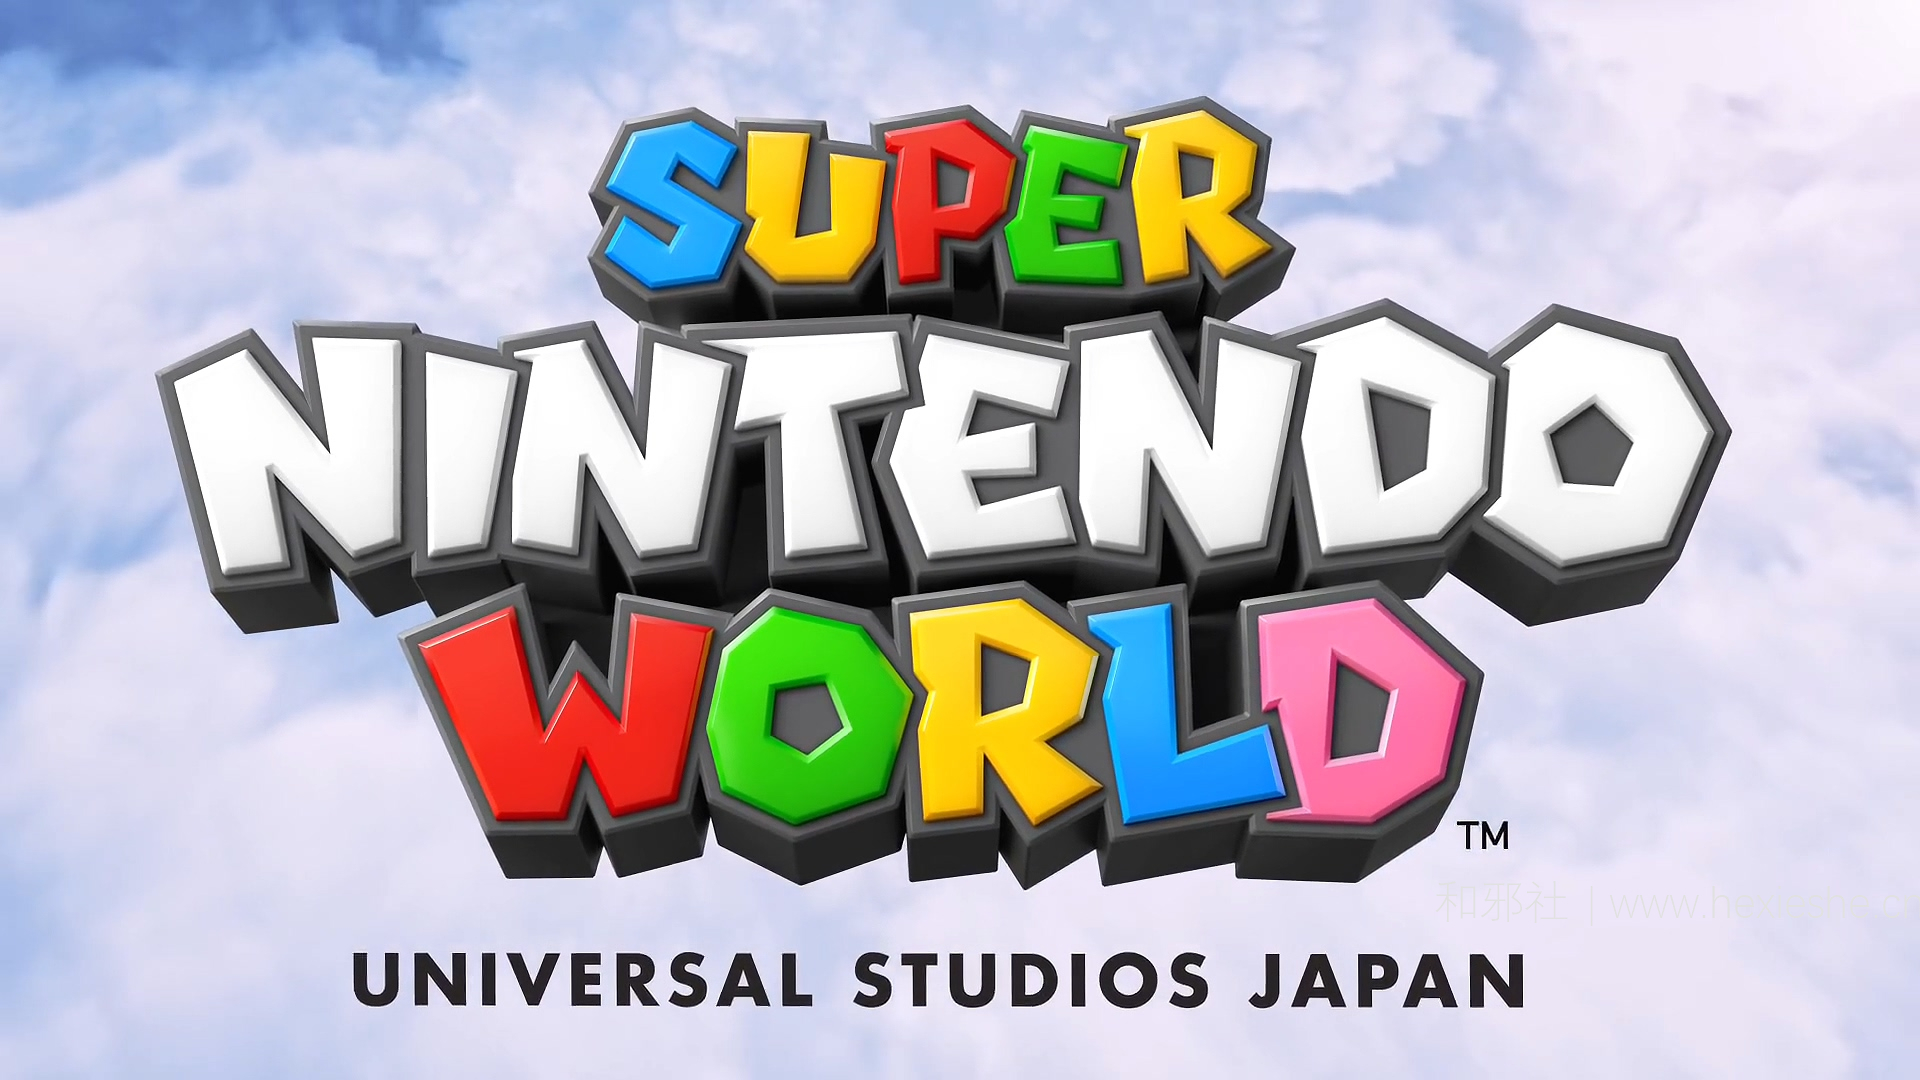 【SUPER NINTENDO WORLD™】Galantis ft. Charli XCX - WE ARE BORN TO PLAY [Music Video].mp4_000236.500_副本